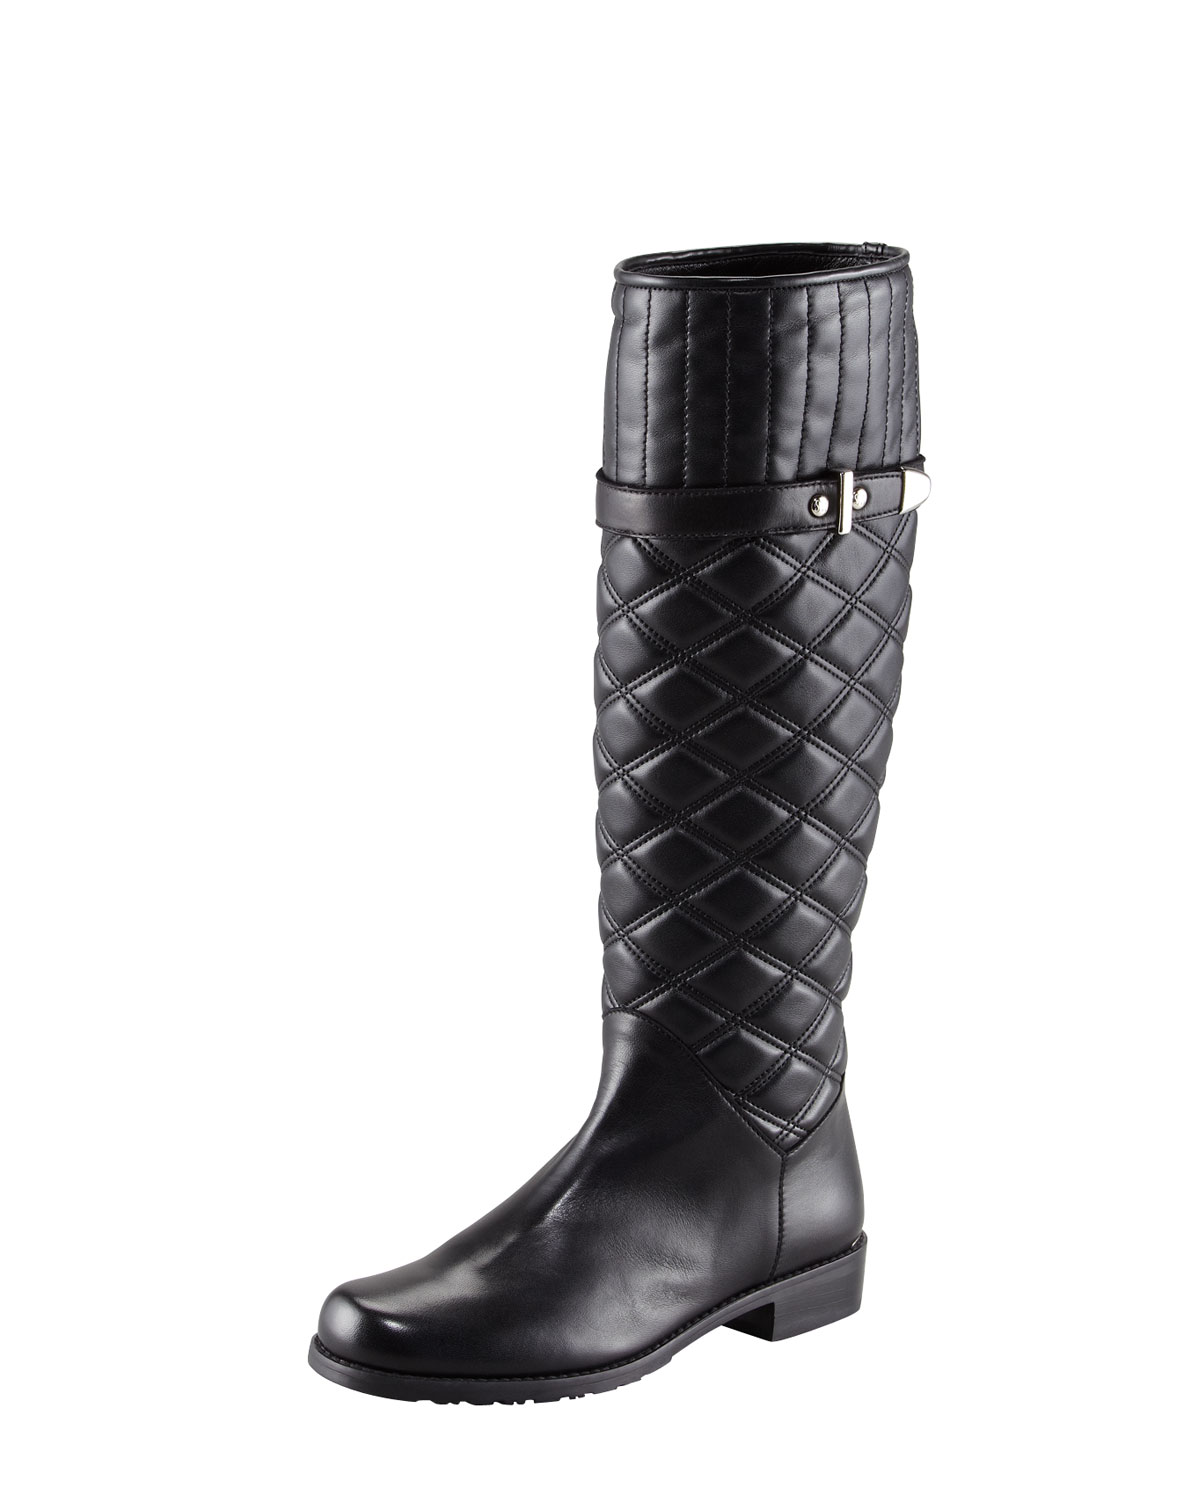 stuart weitzman quilted leather boot in black lyst